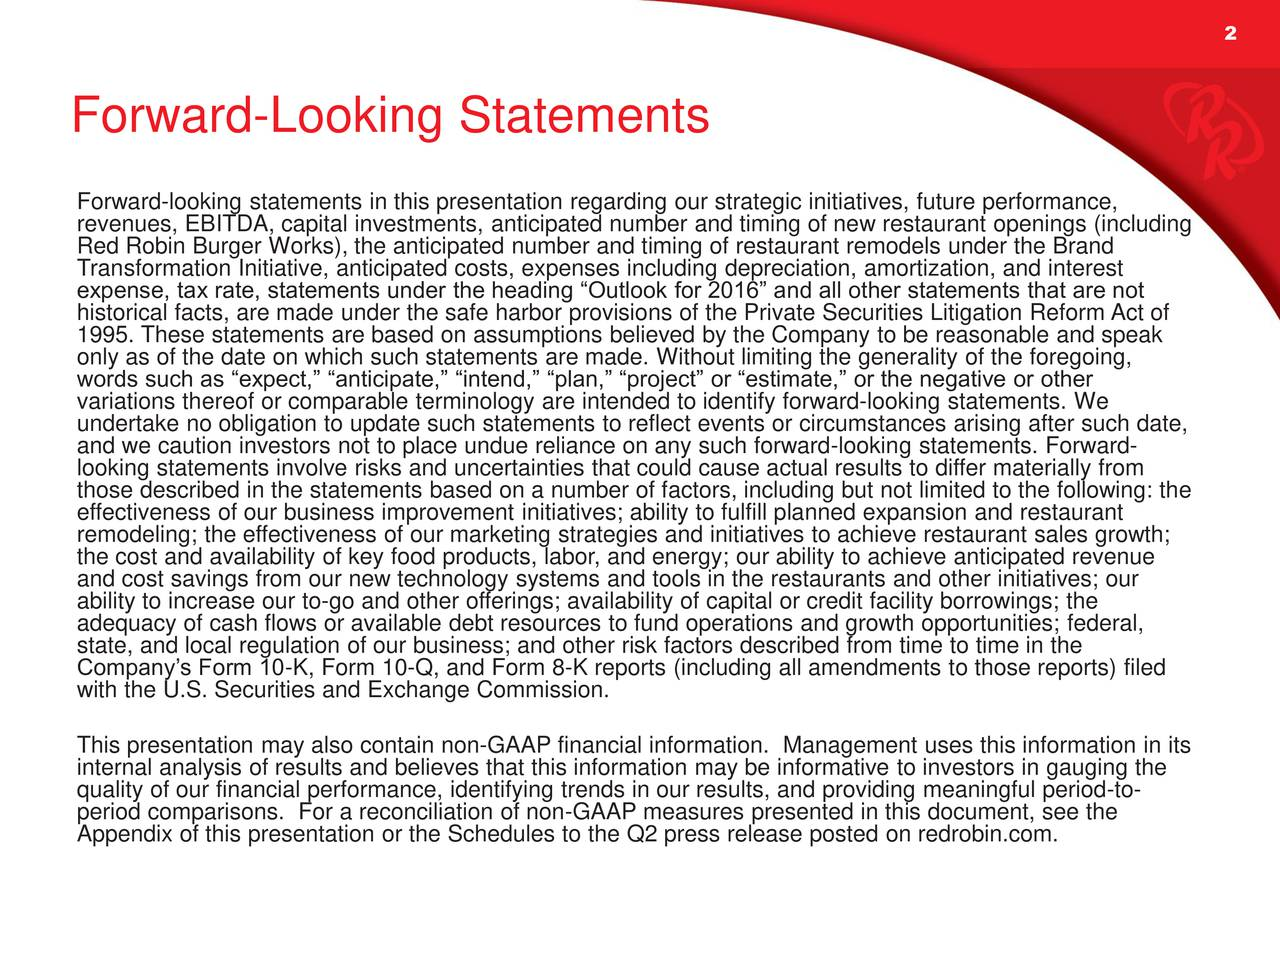 Forward-Looking Statements Forward-looking statements in this presentation regarding our strategic initiatives, future performance, revenues, EBITDA, capital investments, anticipated number and timing of new restaurant openings (including Red Robin Burger Works), the anticipated number and timing of restaurant remodels under the Brand Transformation Initiative, anticipated costs, expenses including depreciation, amortization, and interest expense, tax rate, statements under the heading Outlook for 2016 and all other statements that are not historical facts, are made under the safe harbor provisions of the Private Securities Litigation Reform Act of 1995. These statements are based on assumptions believed by the Company to be reasonable and speak only as of the date on which such statements are made. Without limiting the generality of the foregoing, words such as expect, anticipate, intend, plan, project or estimate, or the negative or other variations thereof or comparable terminology are intended to identify forward-looking statements. We undertake no obligation to update such statements to reflect events or circumstances arising after such date, and we caution investors not to place undue reliance on any such forward-looking statements. Forward- looking statements involve risks and uncertainties that could cause actual results to differ materially from those described in the statements based on a number of factors, including but not limited to the following: the effectiveness of our business improvement initiatives; ability to fulfill planned expansion and restaurant remodeling; the effectiveness of our marketing strategies and initiatives to achieve restaurant sales growth; the cost and availability of key food products, labor, and energy; our ability to achieve anticipated revenue and cost savings from our new technology systems and tools in the restaurants and other initiatives; our ability to increase our to-go and other offerings; availability of capital or c